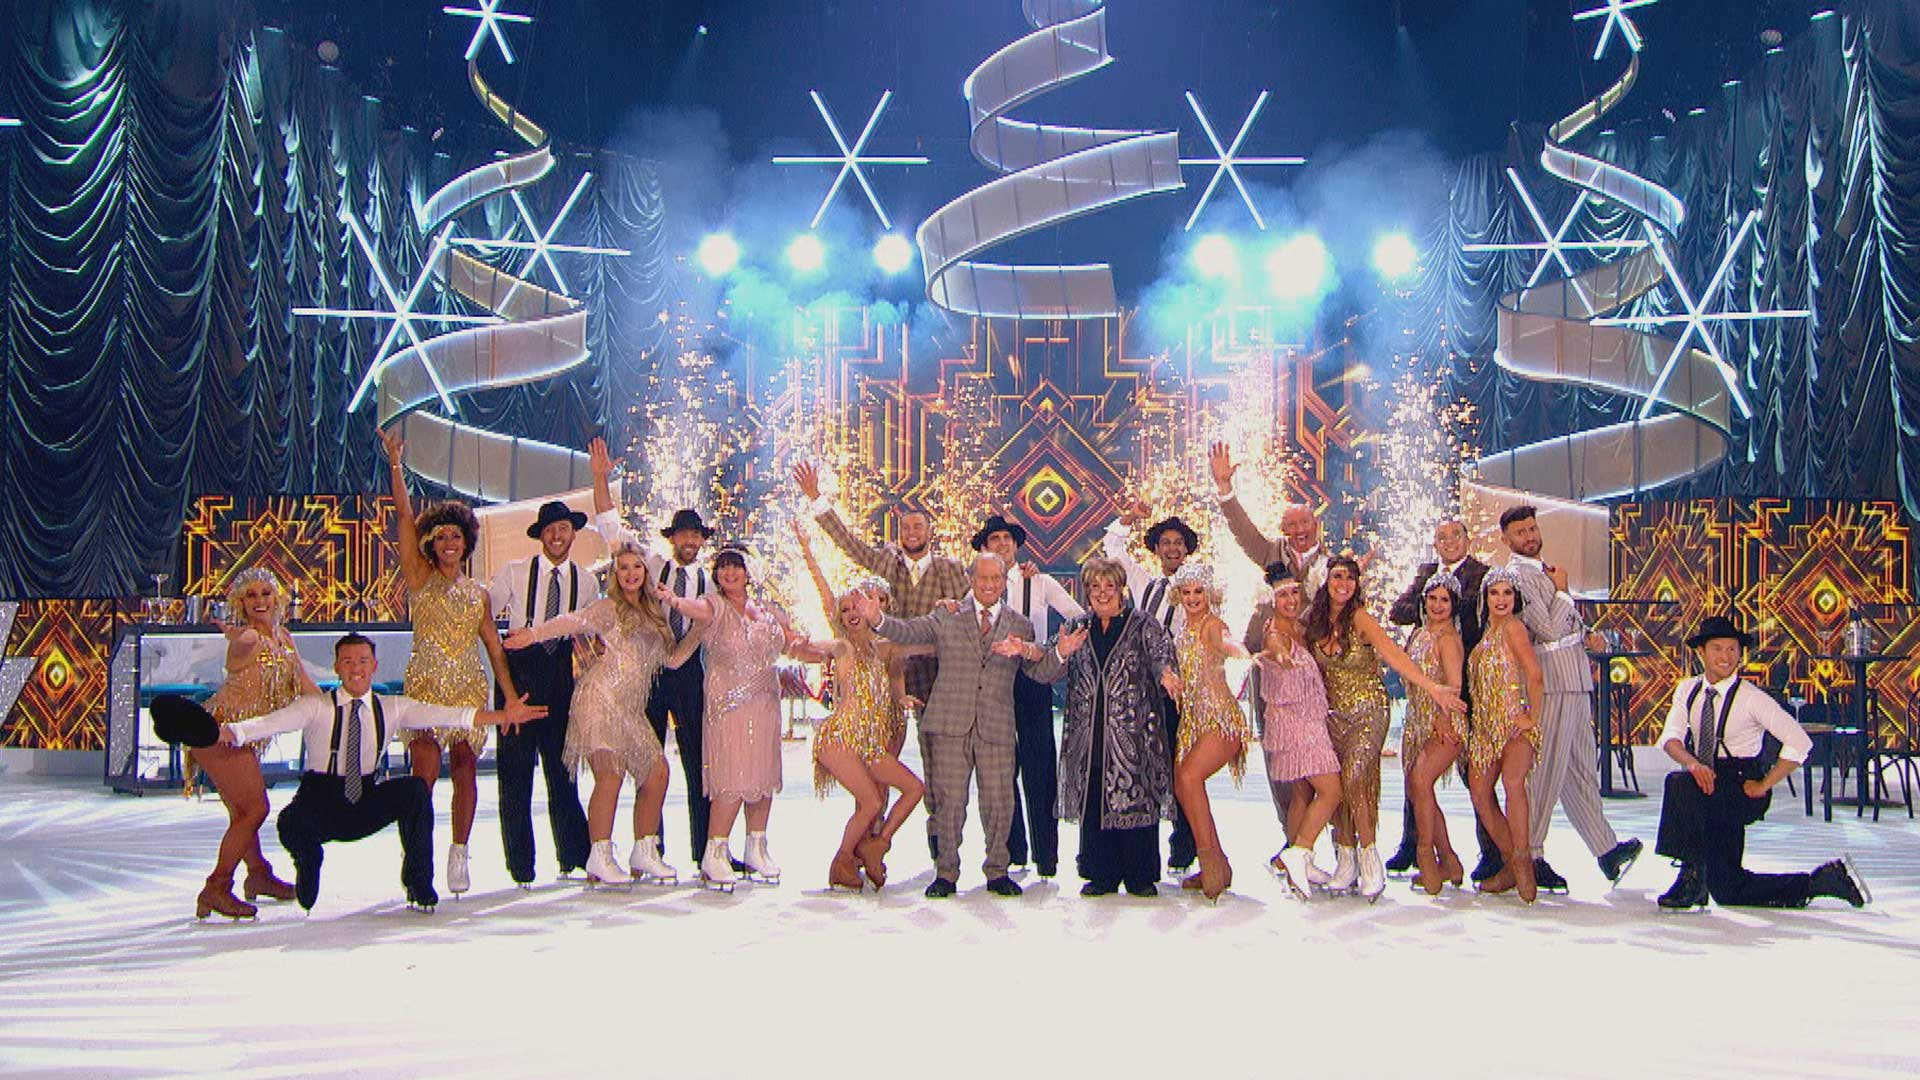 The Real Full Monty on Ice